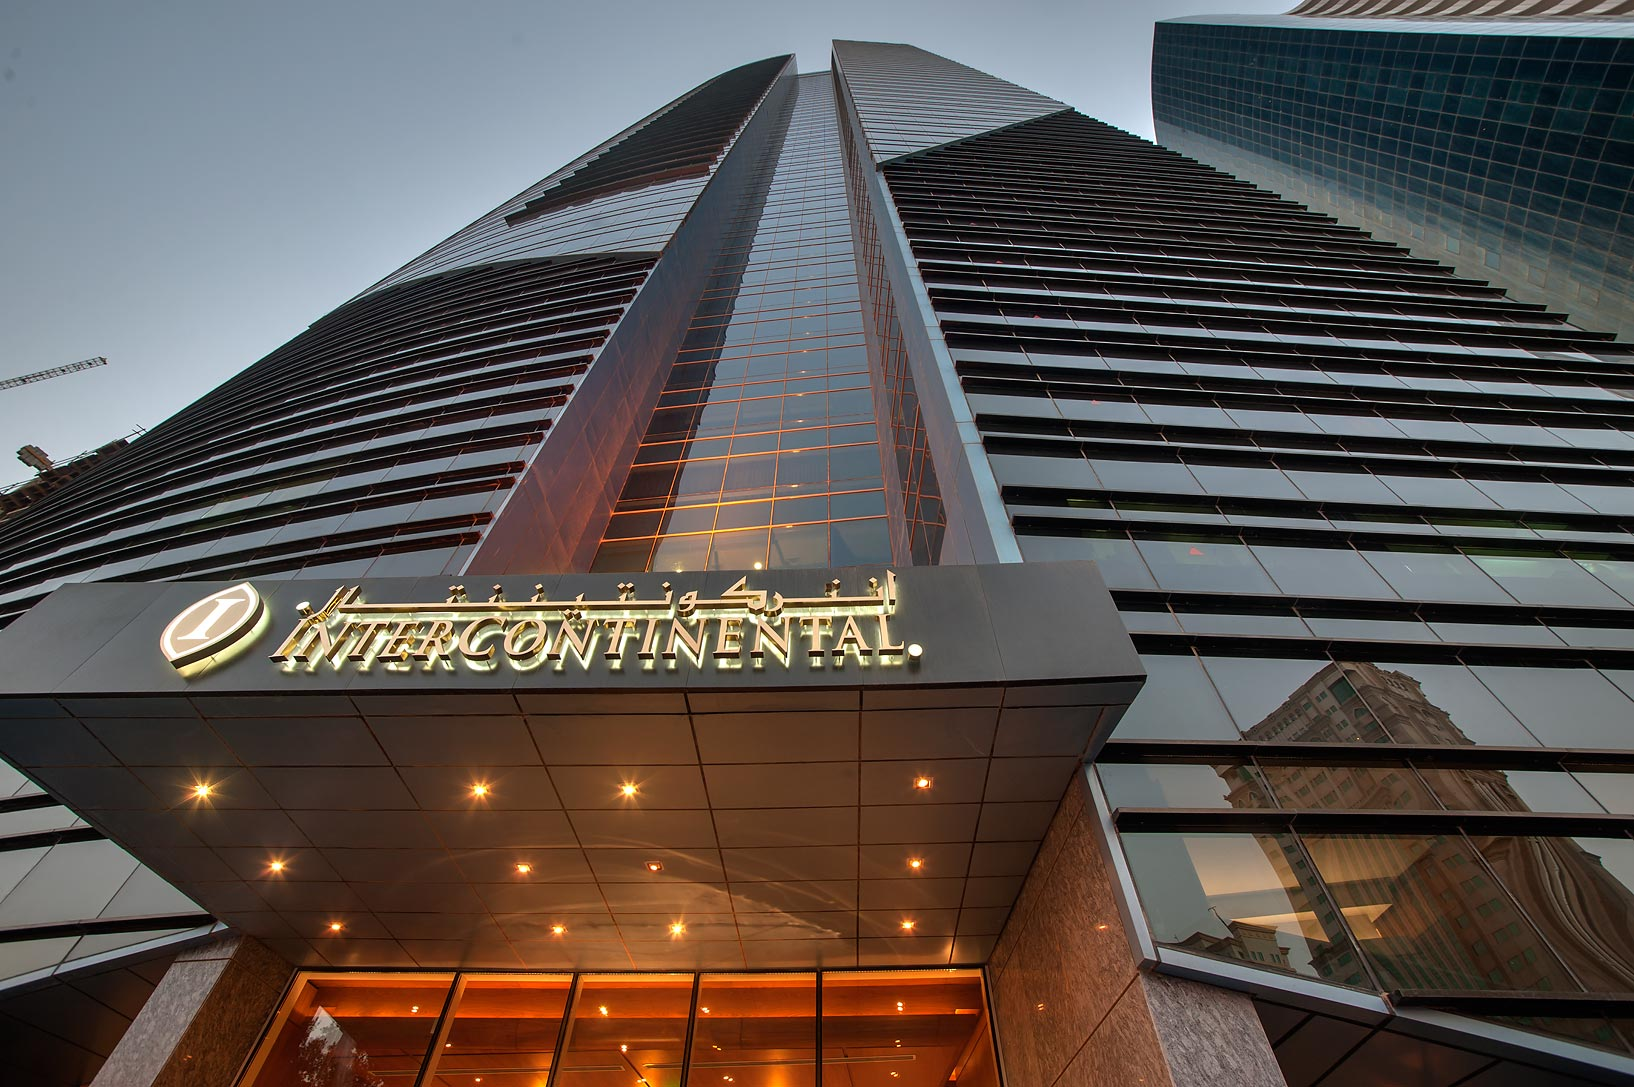 Intercontinental City Hotel in West Bay. Doha, Qatar